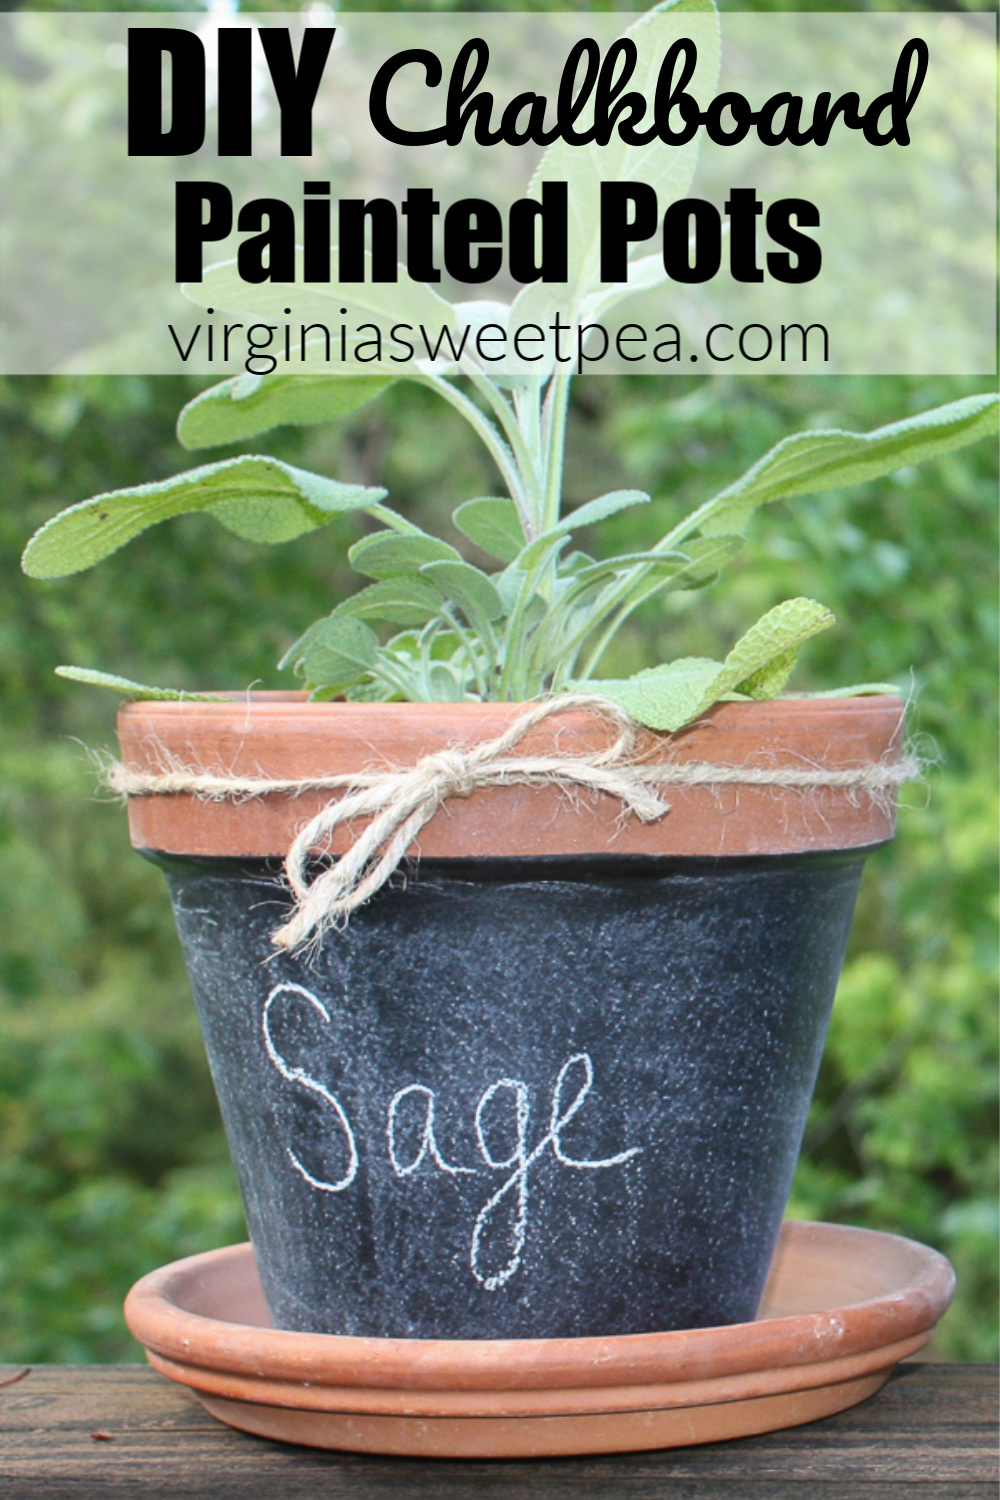 How to Make Chalkboard Painted Pots - Learn how to make chalkboard painted pots. Plant herbs, vegetables, or flowers and use chalk to label the pot. #chalkboardproject #chalkboardpots #herbpots via @spaula